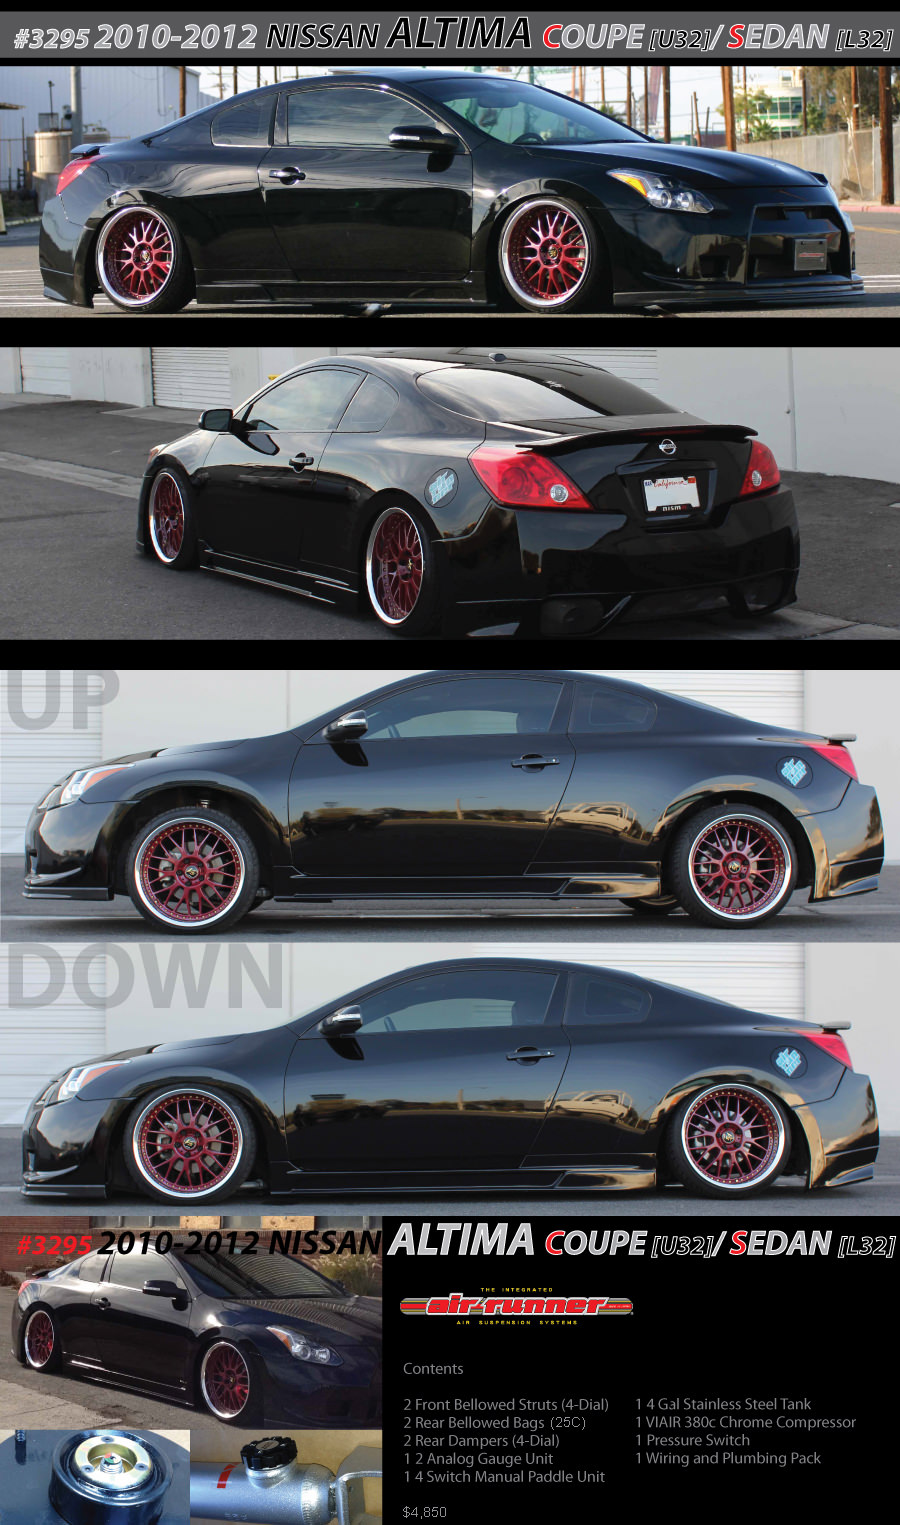 3295 2010-2012 nissan altima coupe / sedan | air runner systems